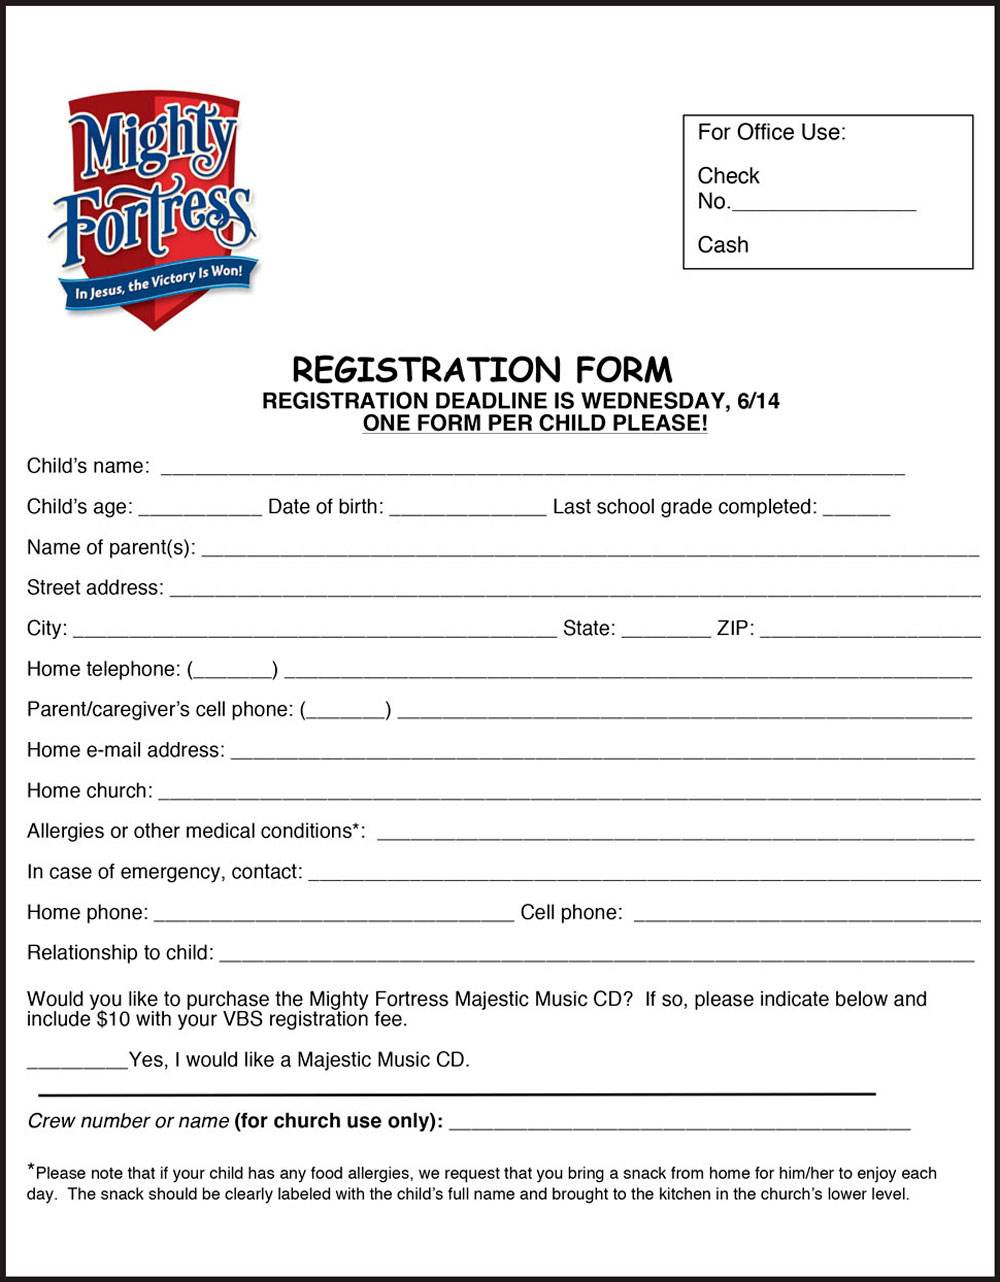 VBS_2017_Registration_Form.jpg